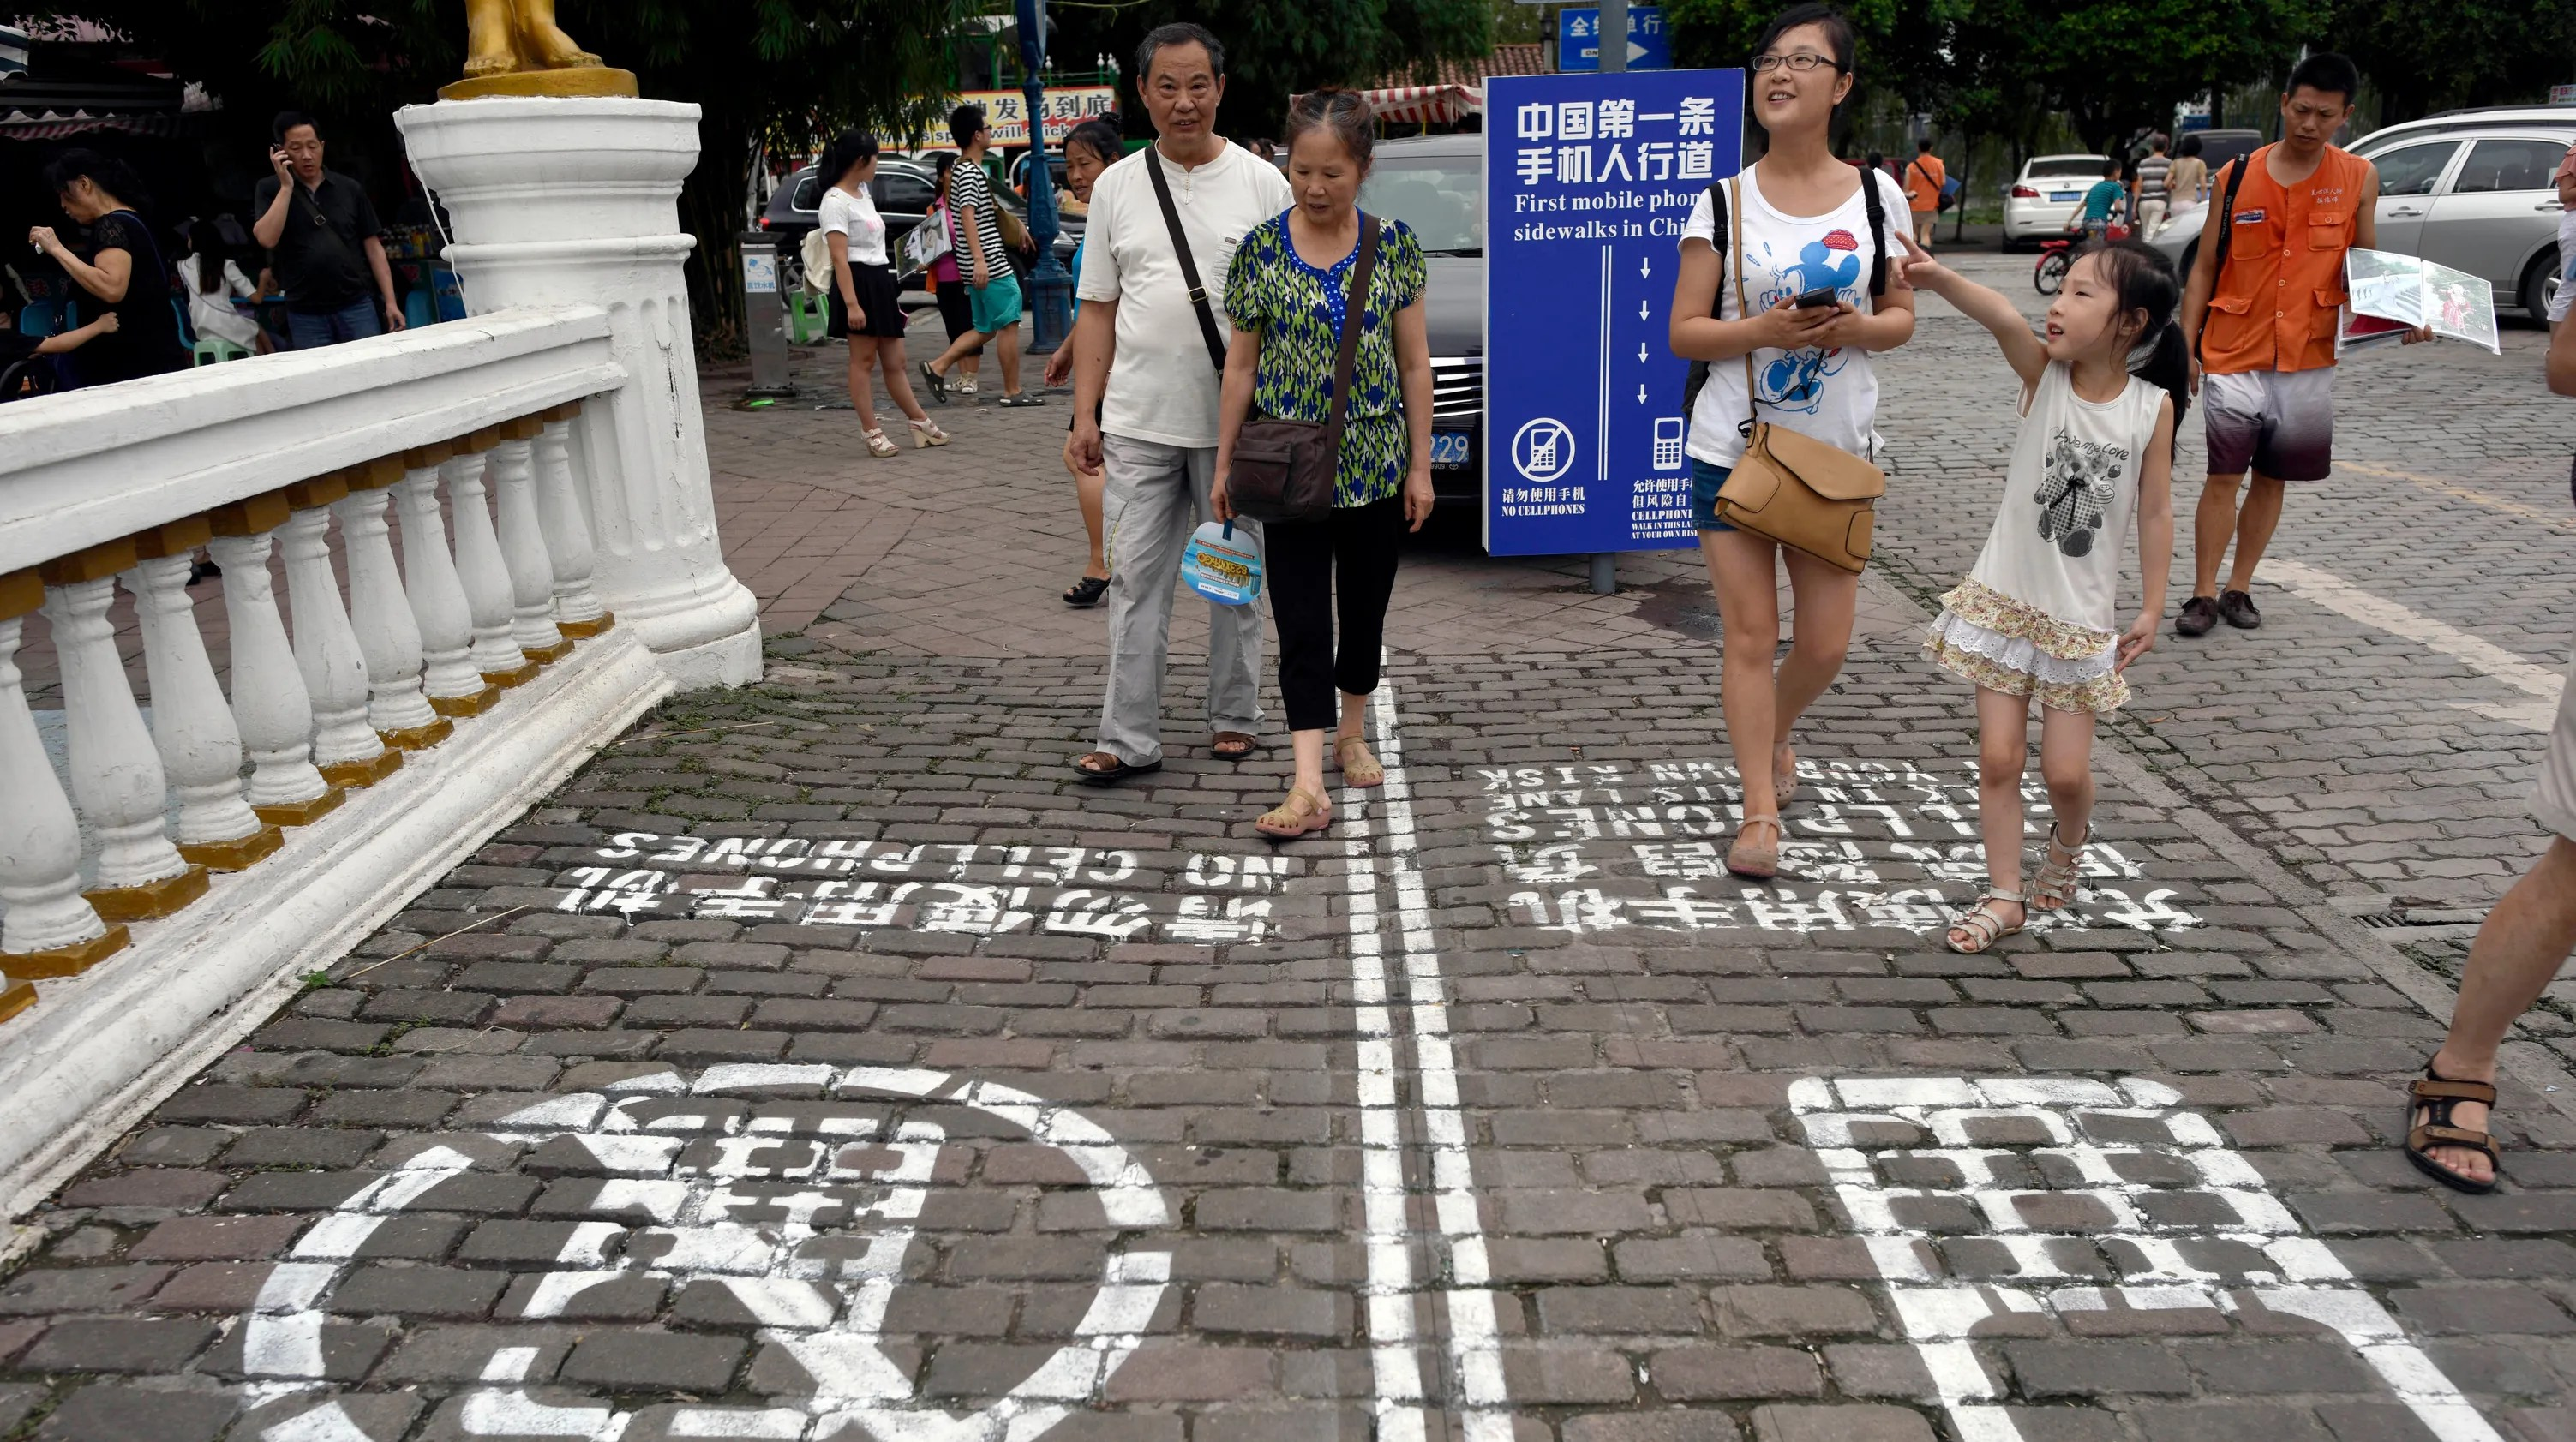 Smart Phone Move City Unveils Cellphone Only Sidewalk Lanes